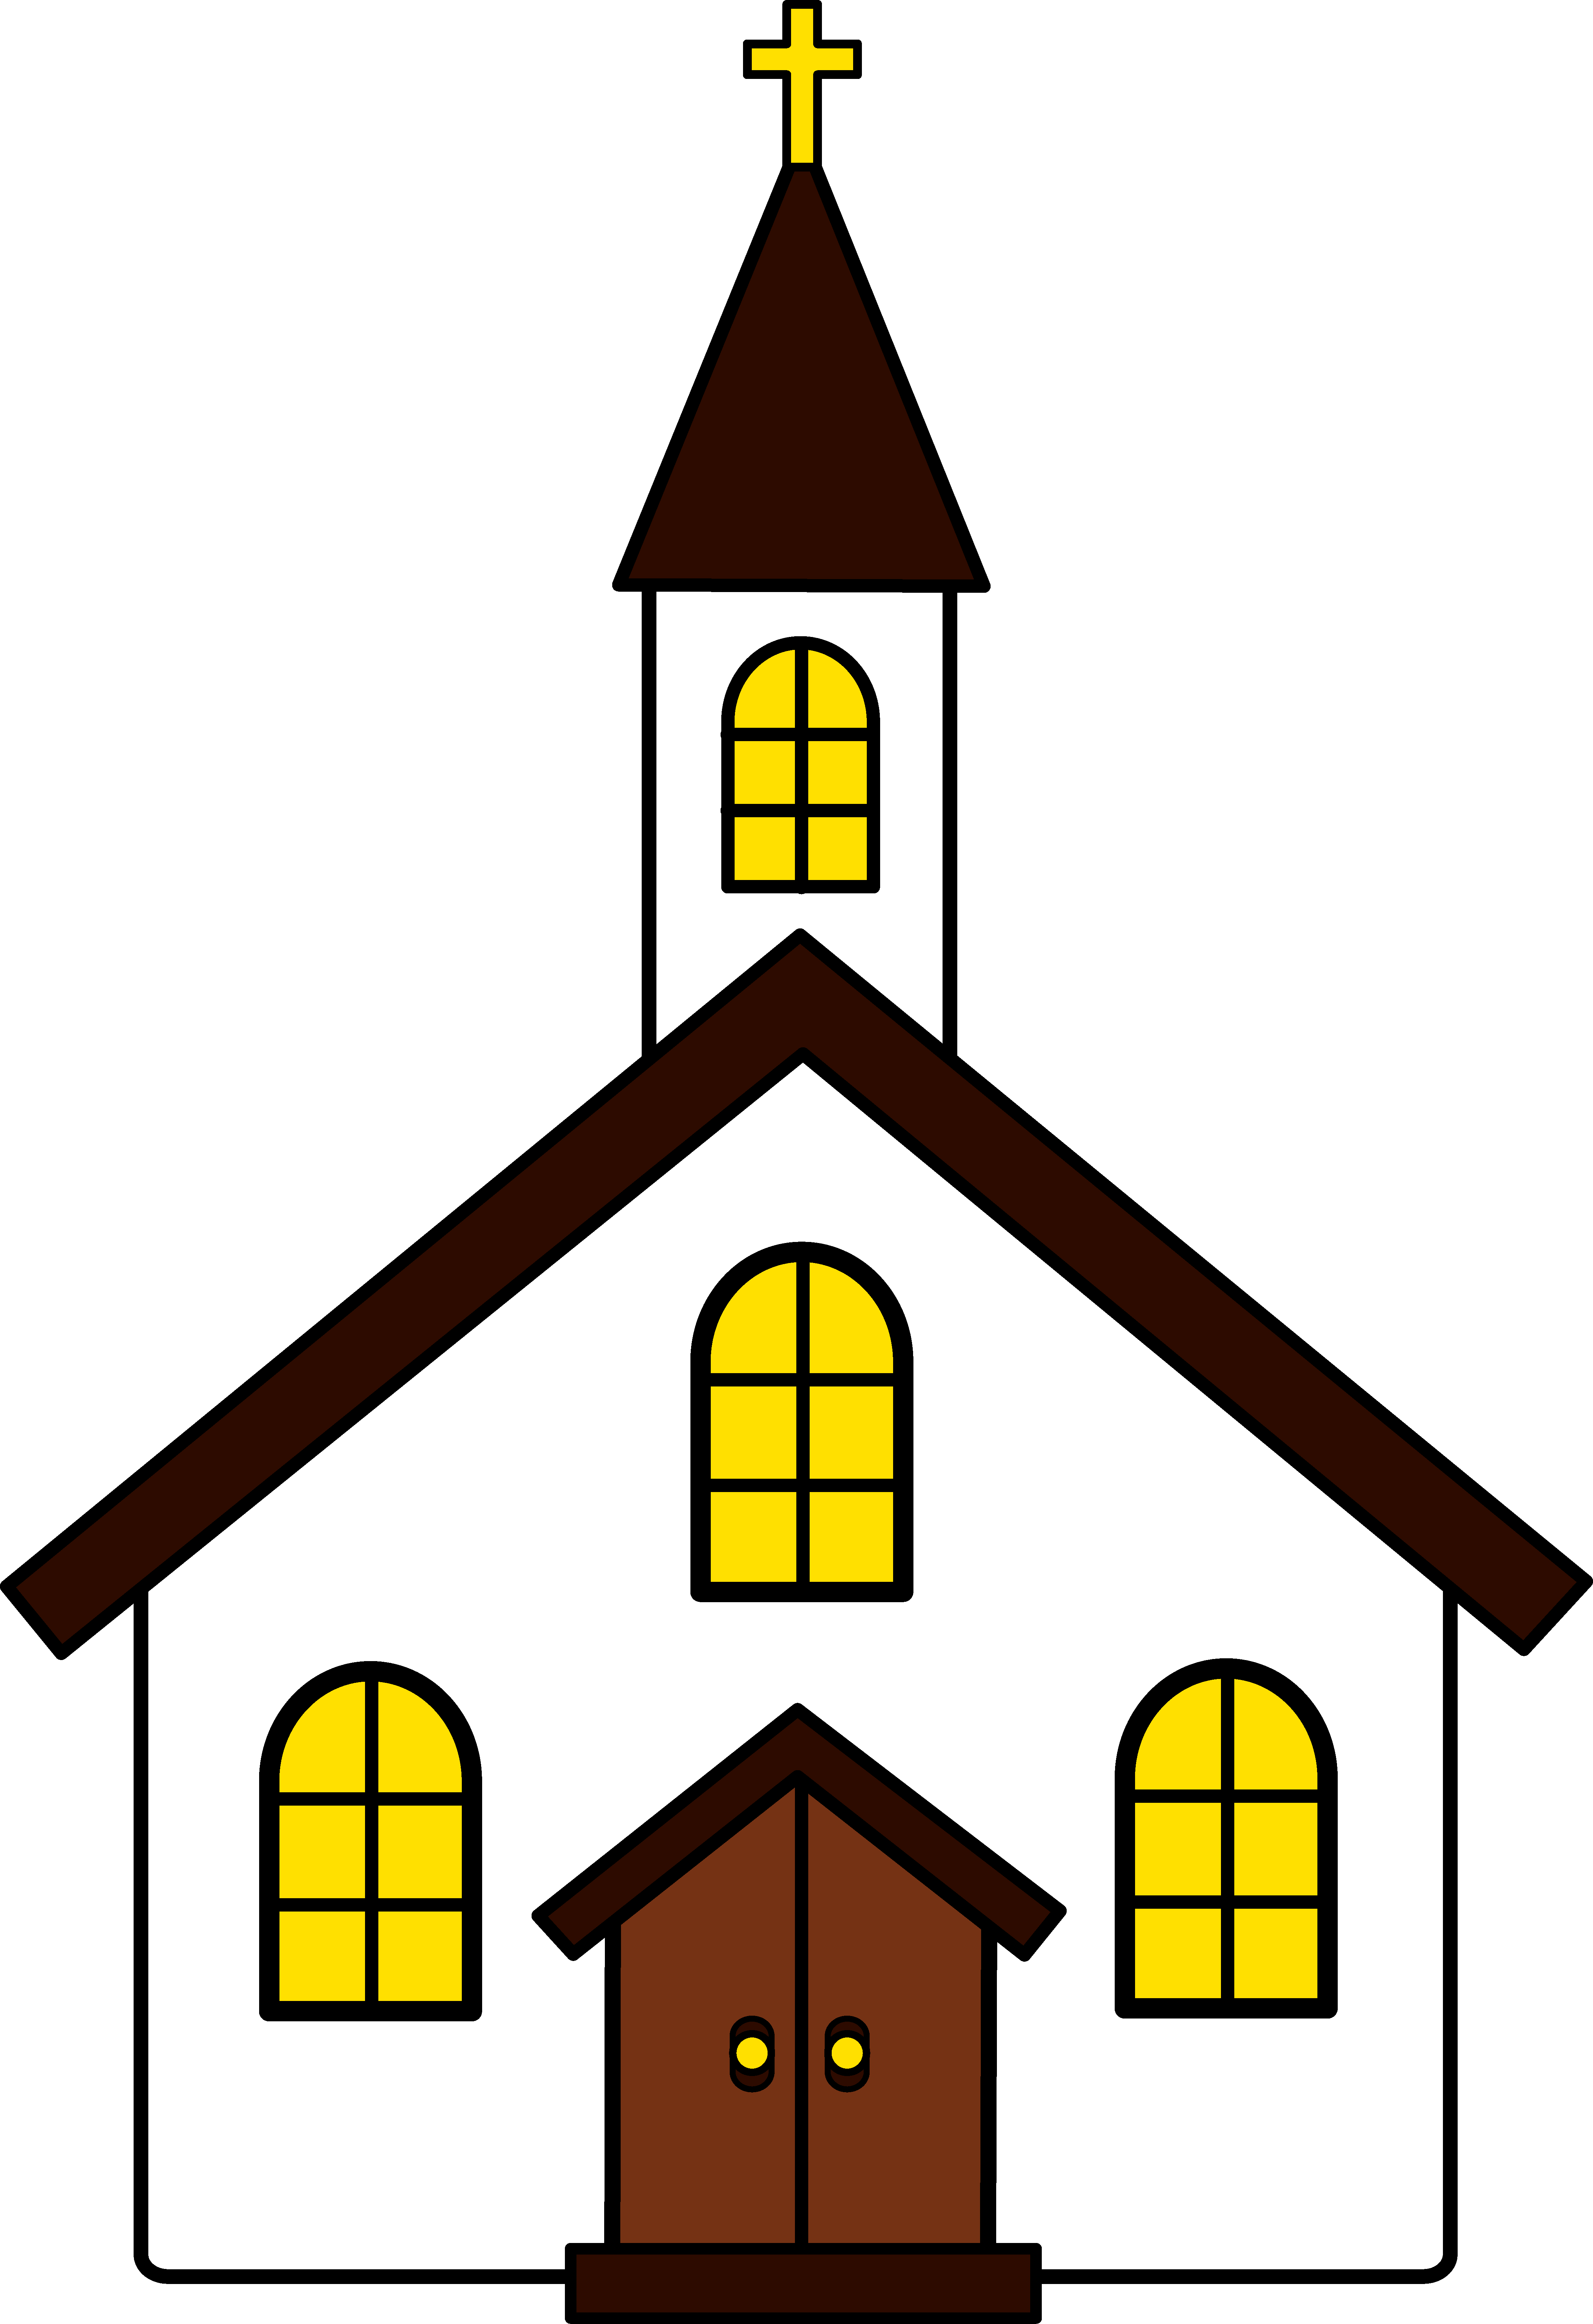 Chapel free clipart clip art royalty free stock Free Images Church, Download Free Clip Art, Free Clip Art on Clipart ... clip art royalty free stock